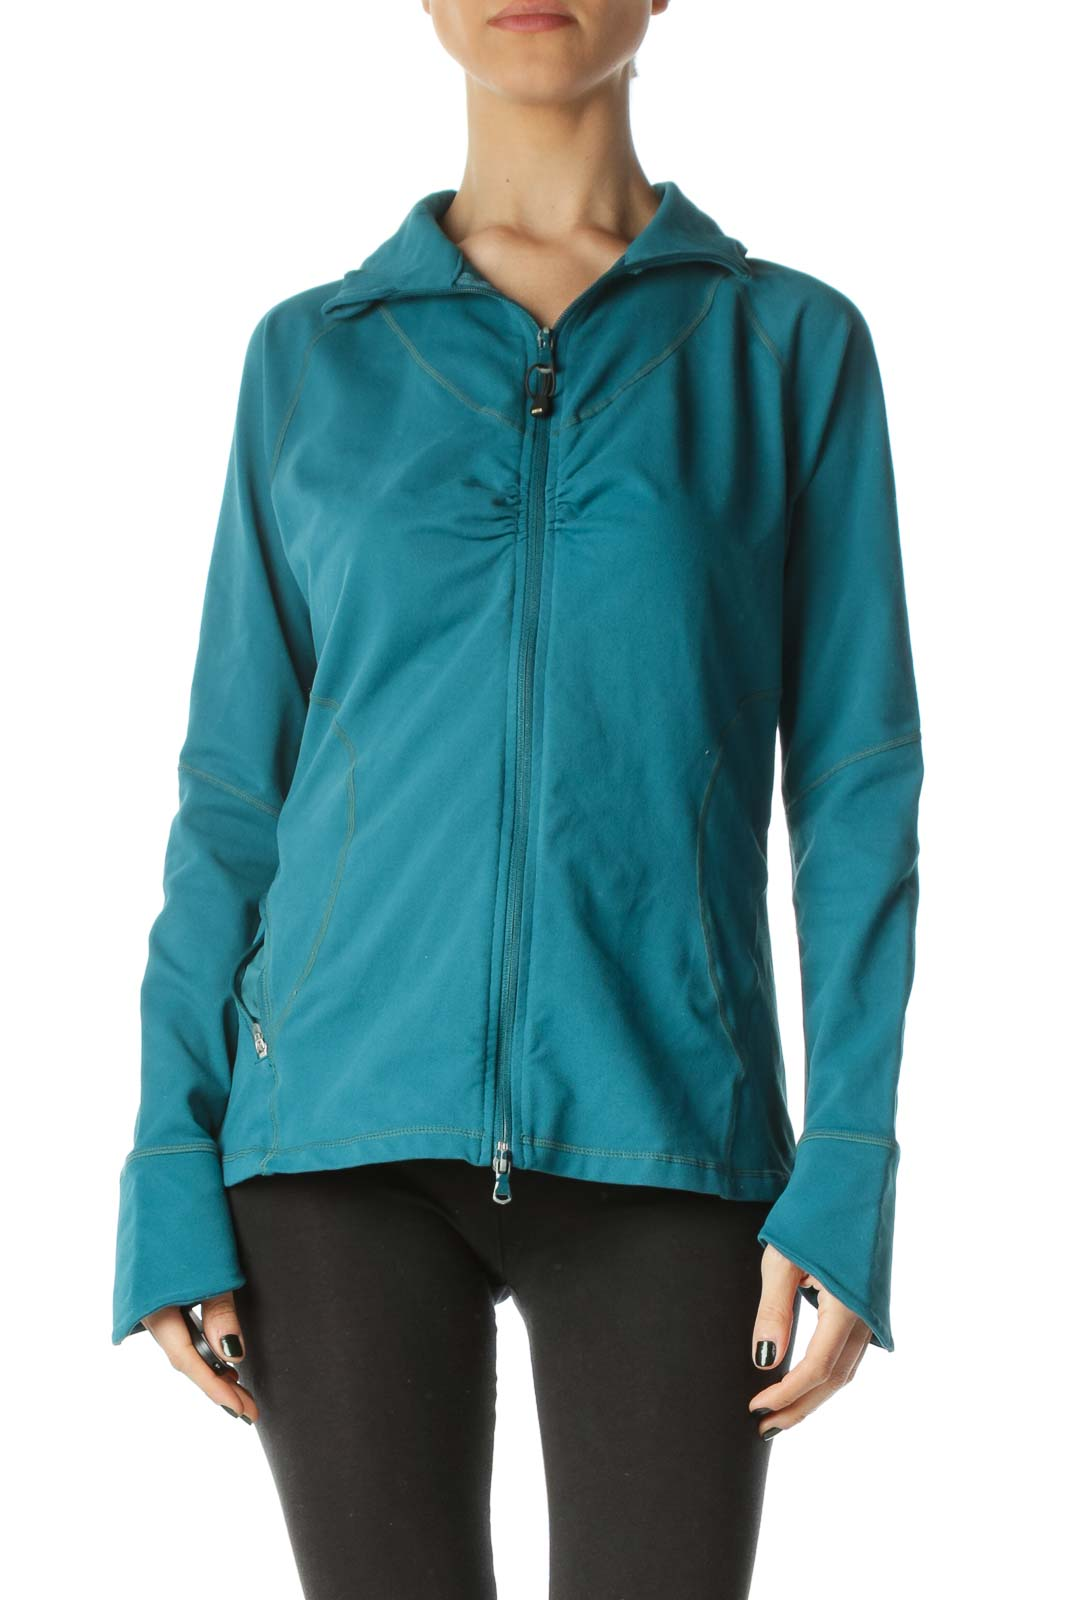 Teal Blue Stretch Scrunched Sports Jacket Front